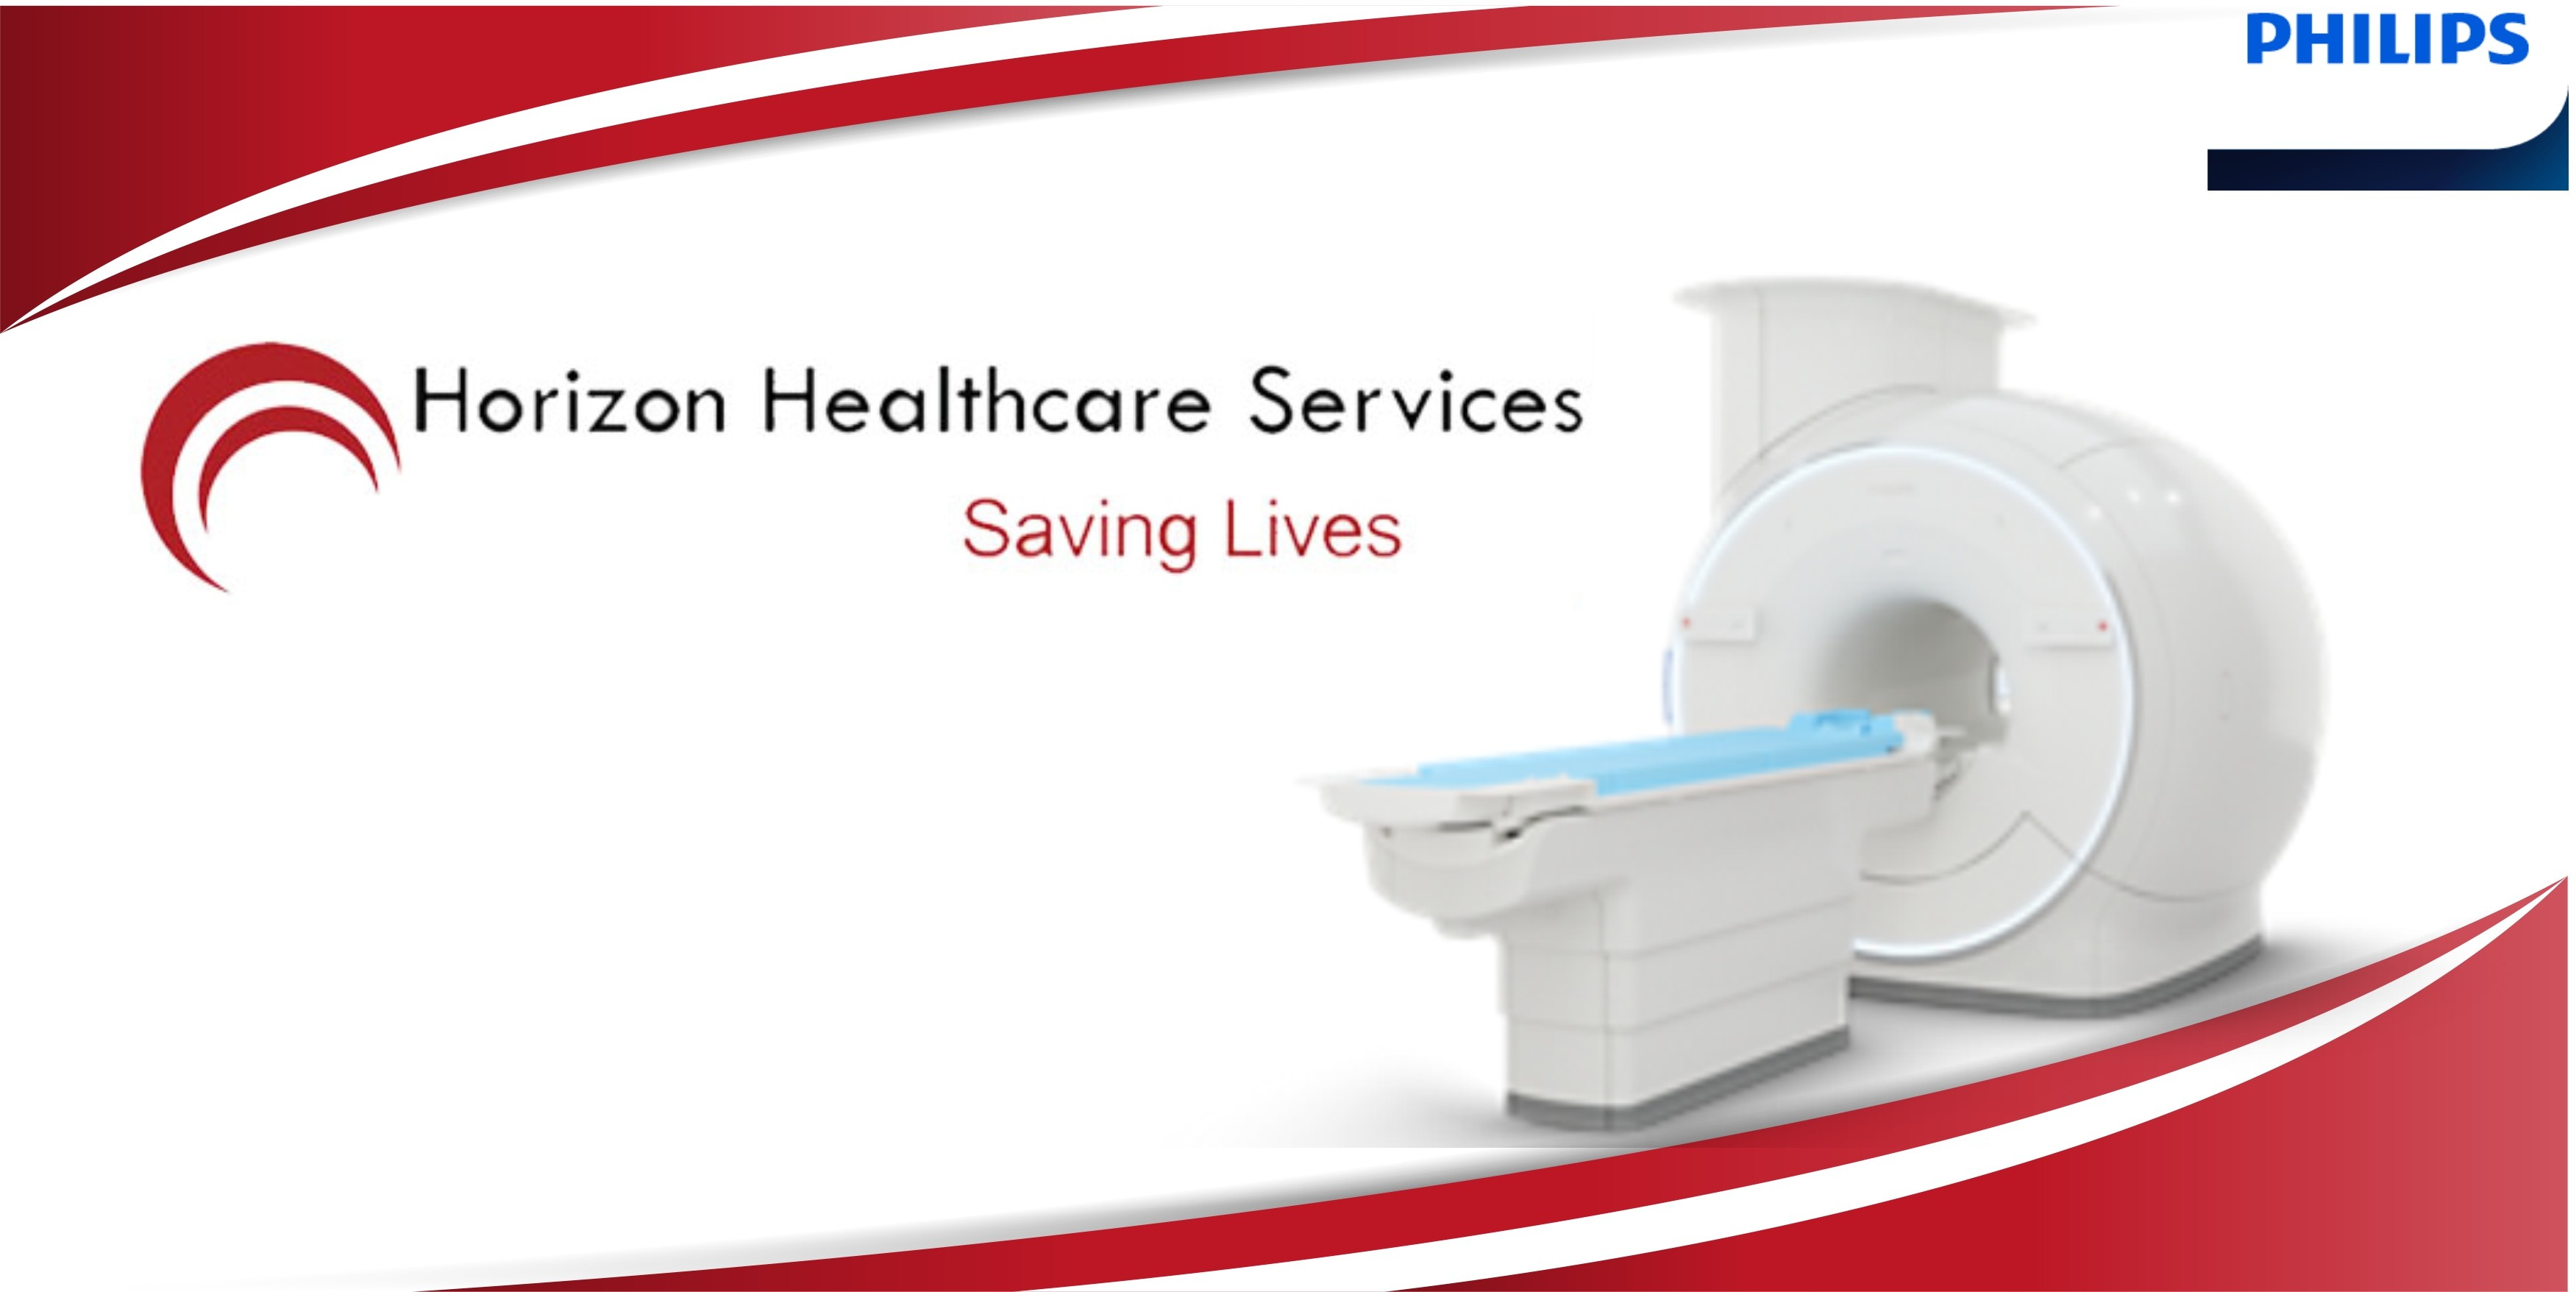 Horizon Healthcare Services | LinkedIn